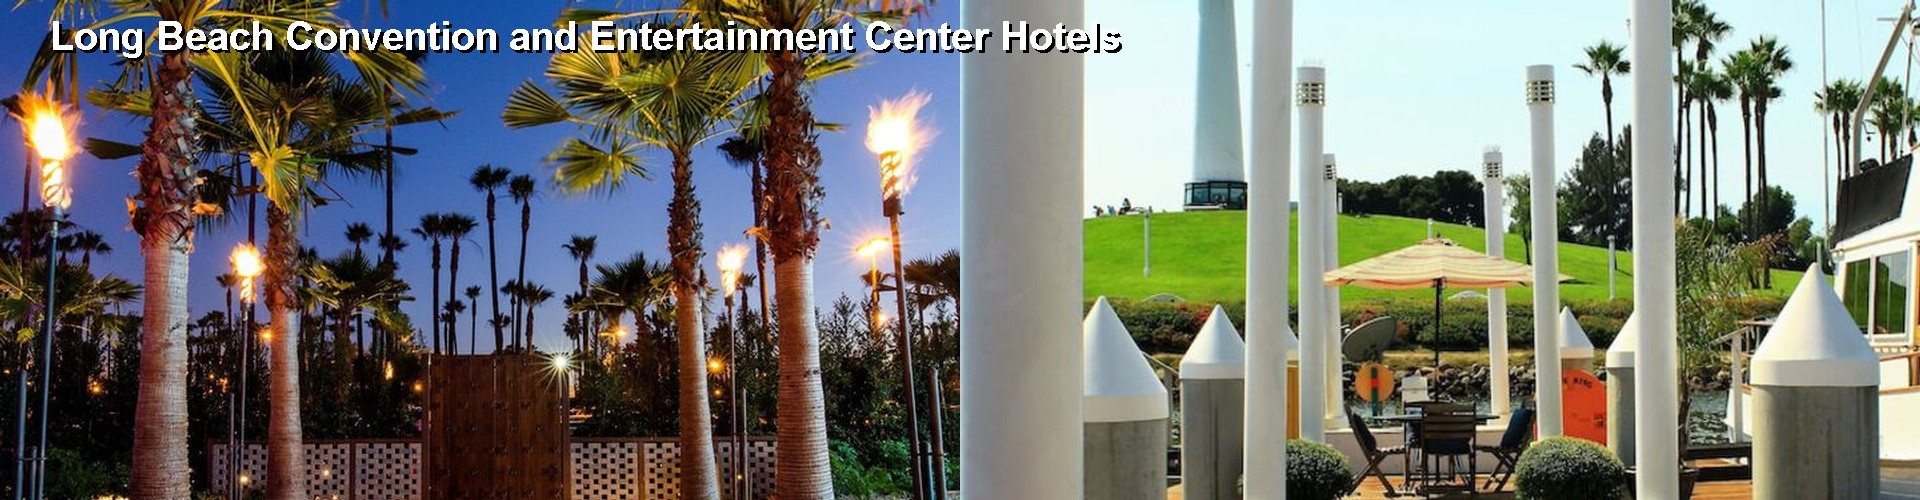 5 Best Hotels near Long Beach Convention and Entertainment Center